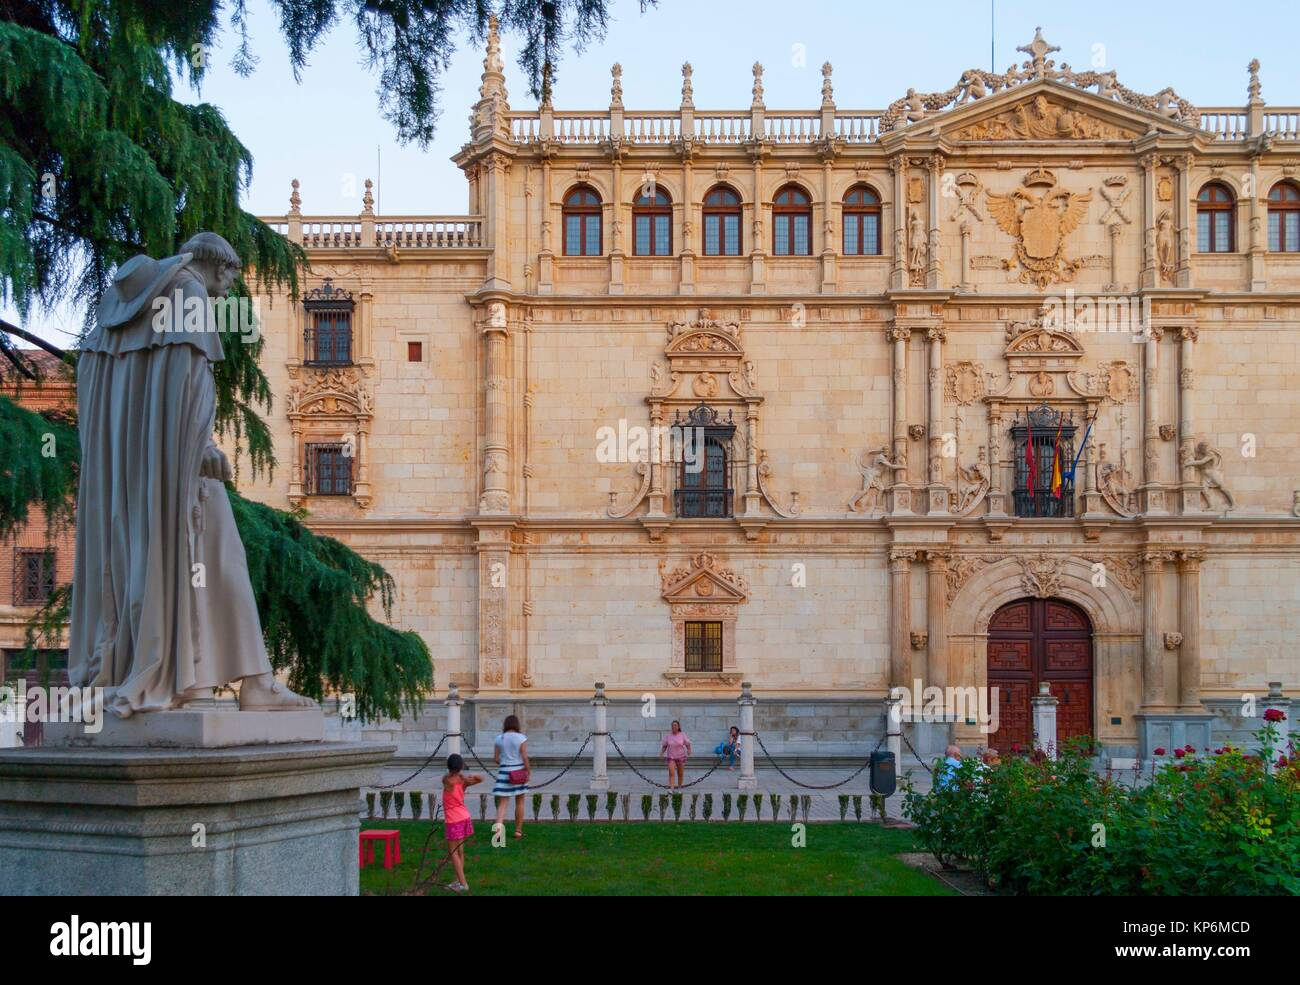 Universidad de Alcalá de Henares with cardenal Cisneros statue. Madrid. Spain. Stock Photo